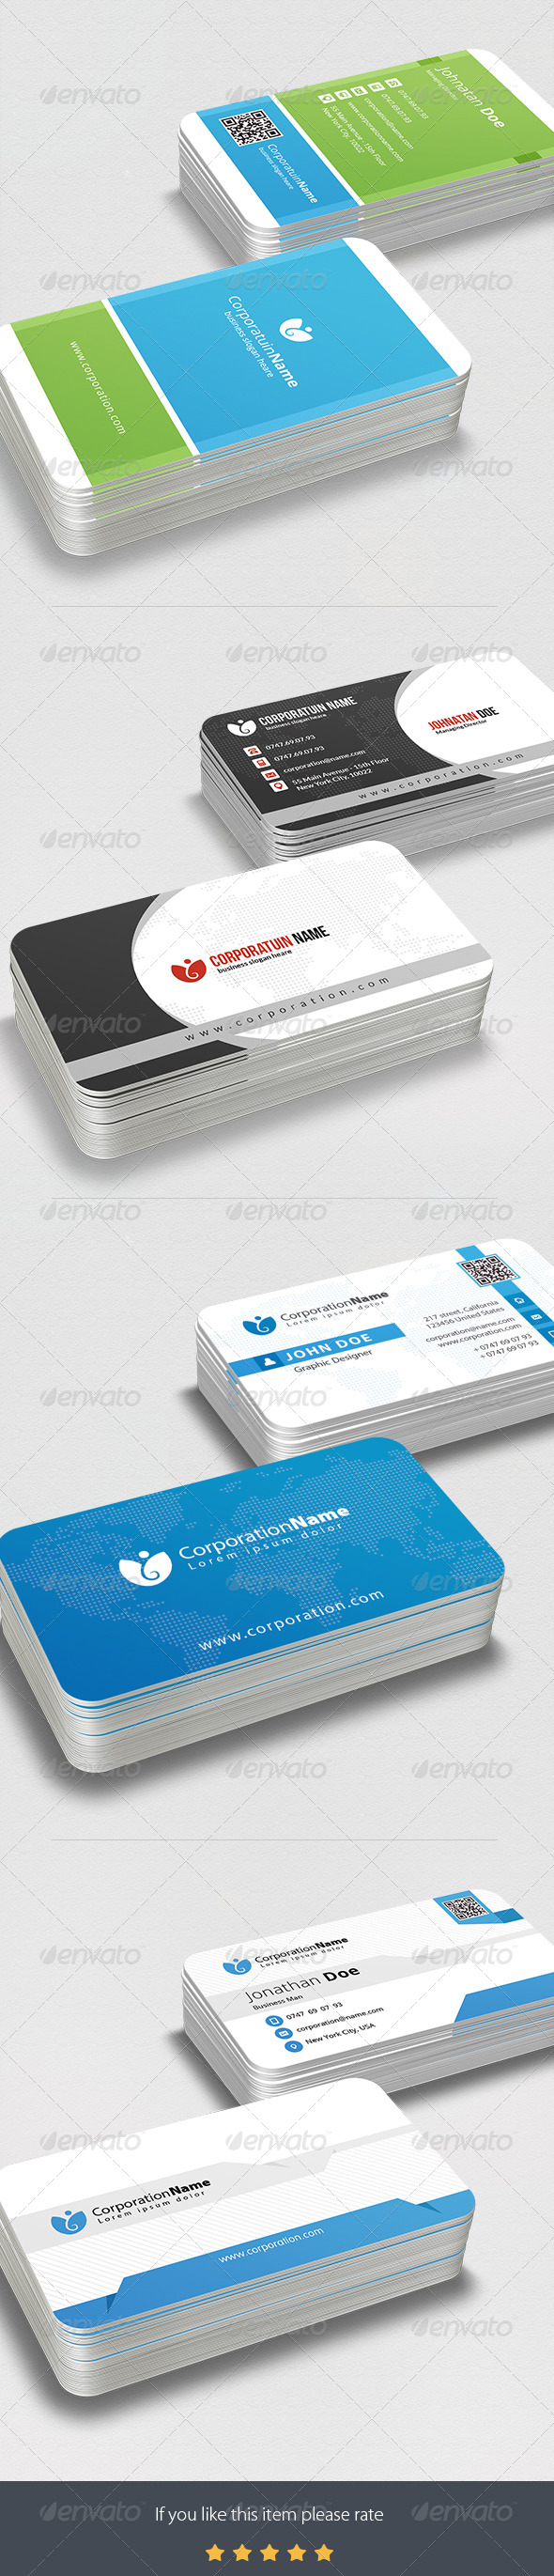 4 in 1 Multipurpose Business Card Bundle